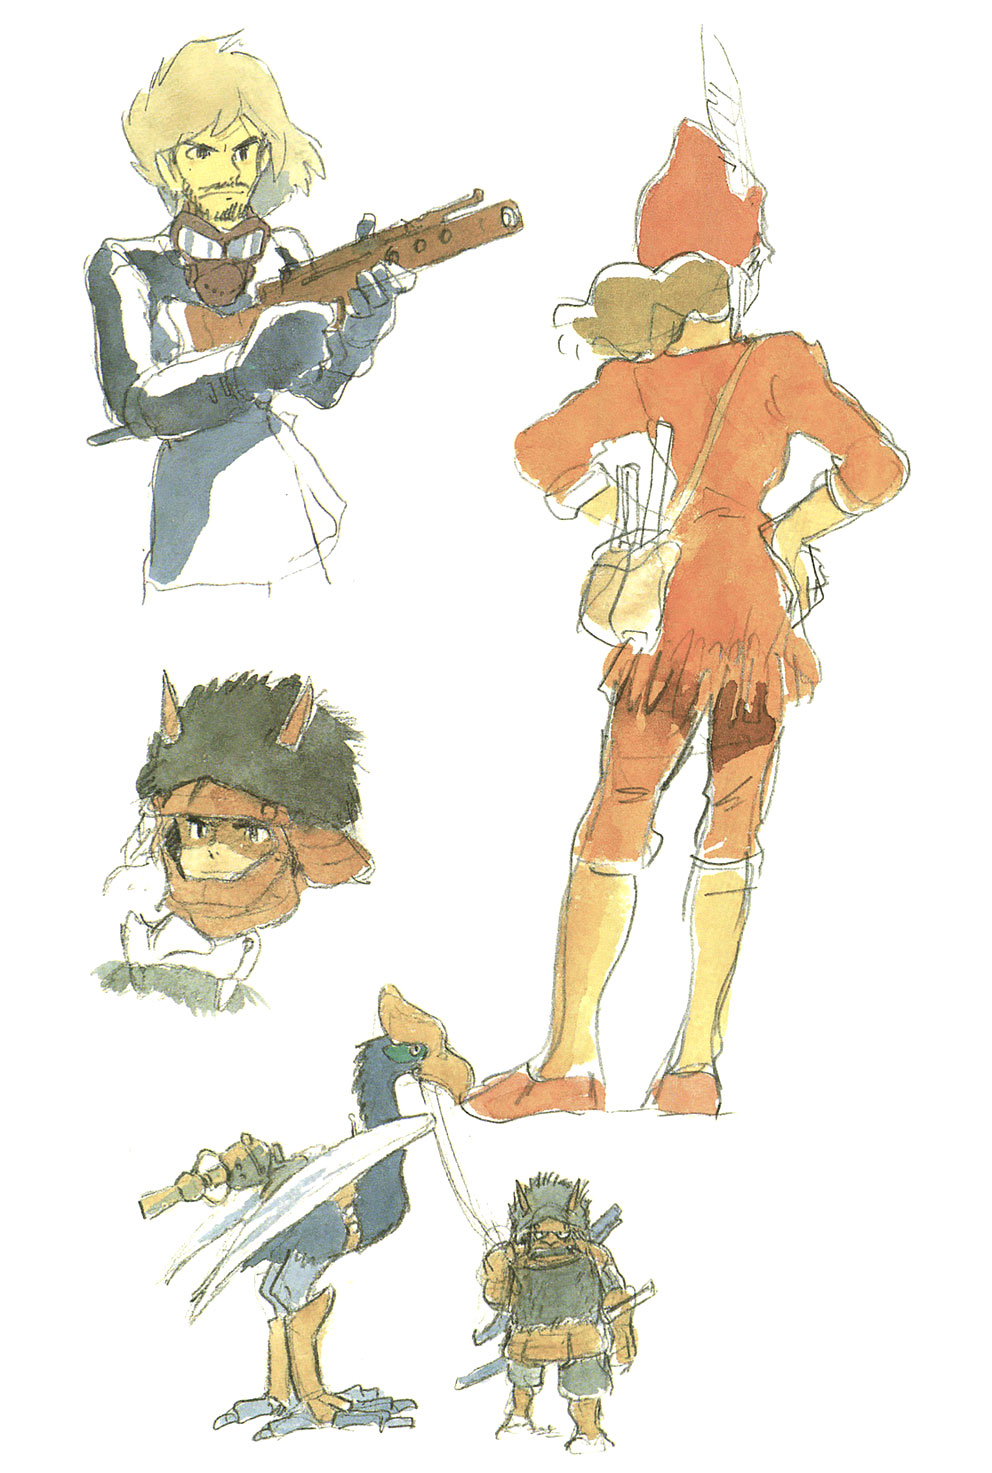 nausicaa_of_the_valley_of_the_wind_concept_art_character_03c.jpg